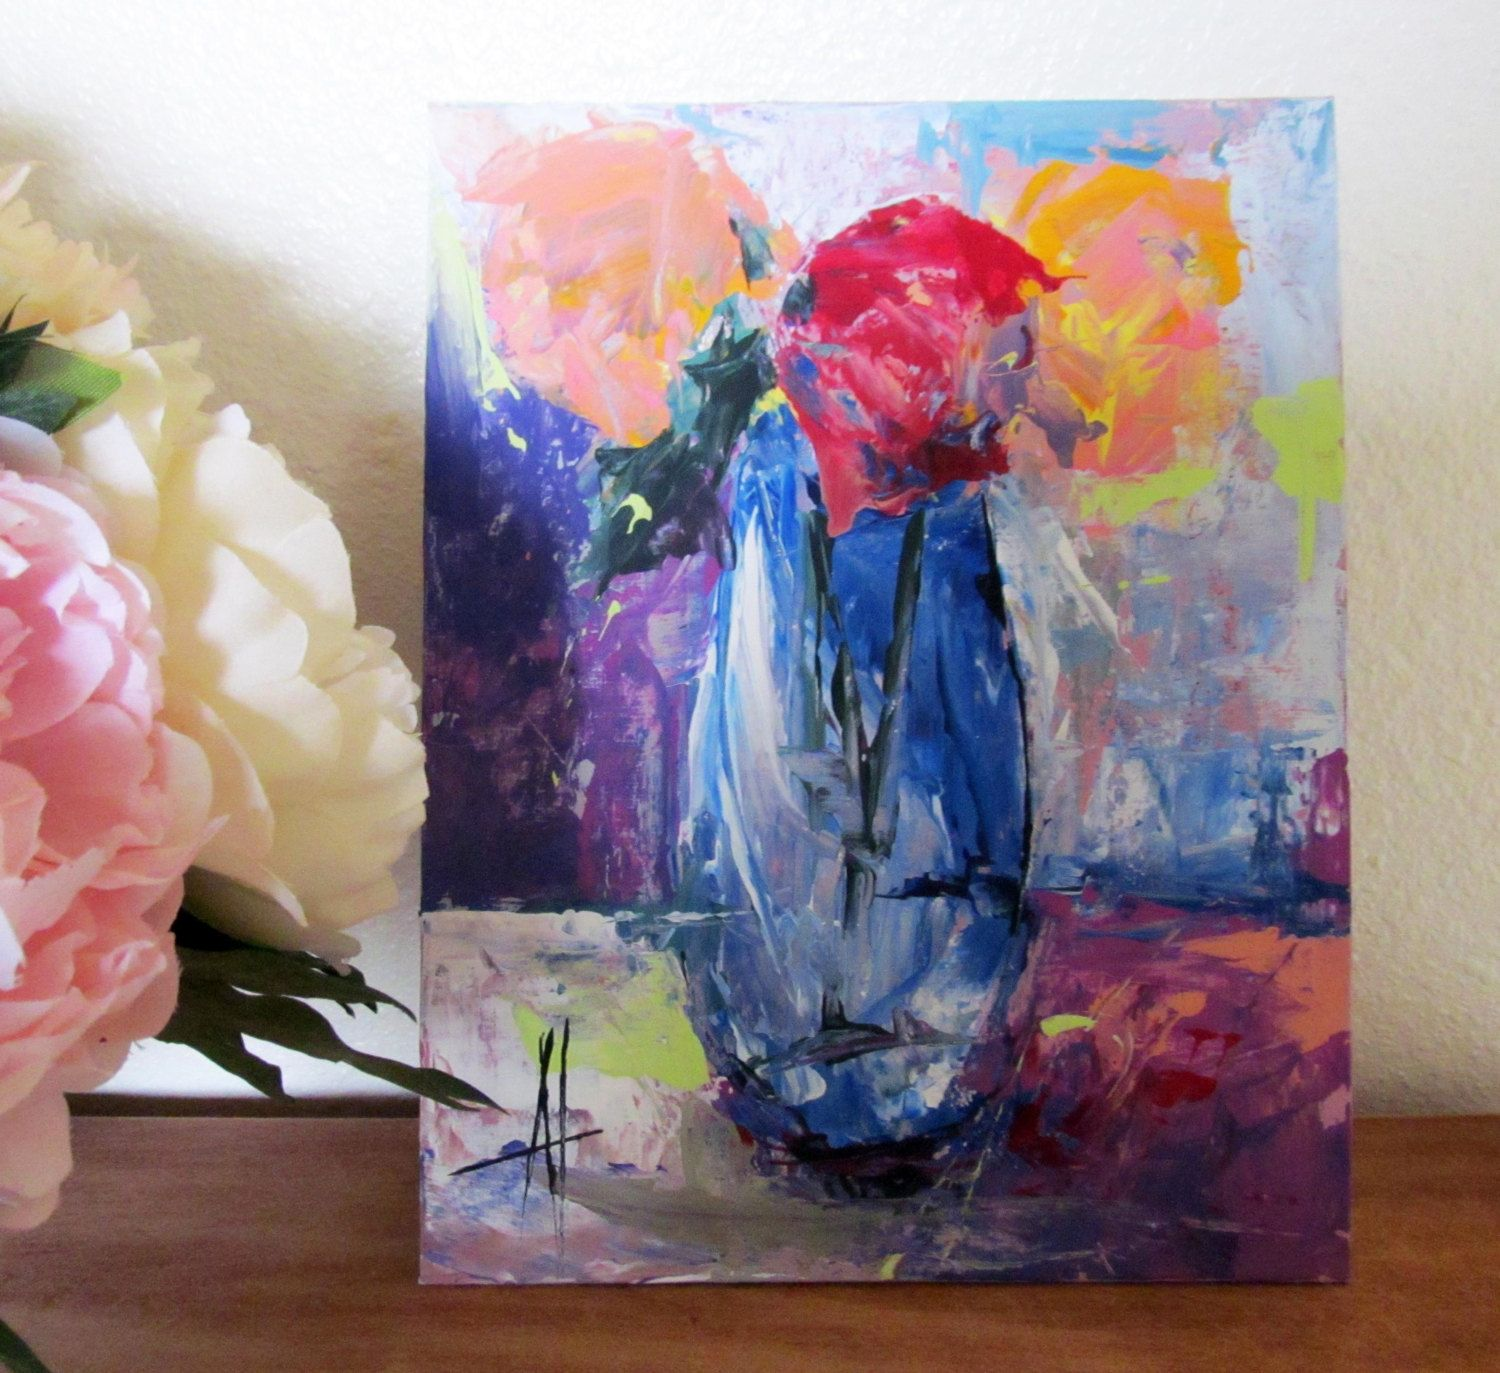 Roses in Blue Vase Original Contemporary Palette Knife Acrylic Painting 8x10 inches Canvas Board by Anne Thouthip Free Shipping USA by AnneThouthipFineArt on Etsy